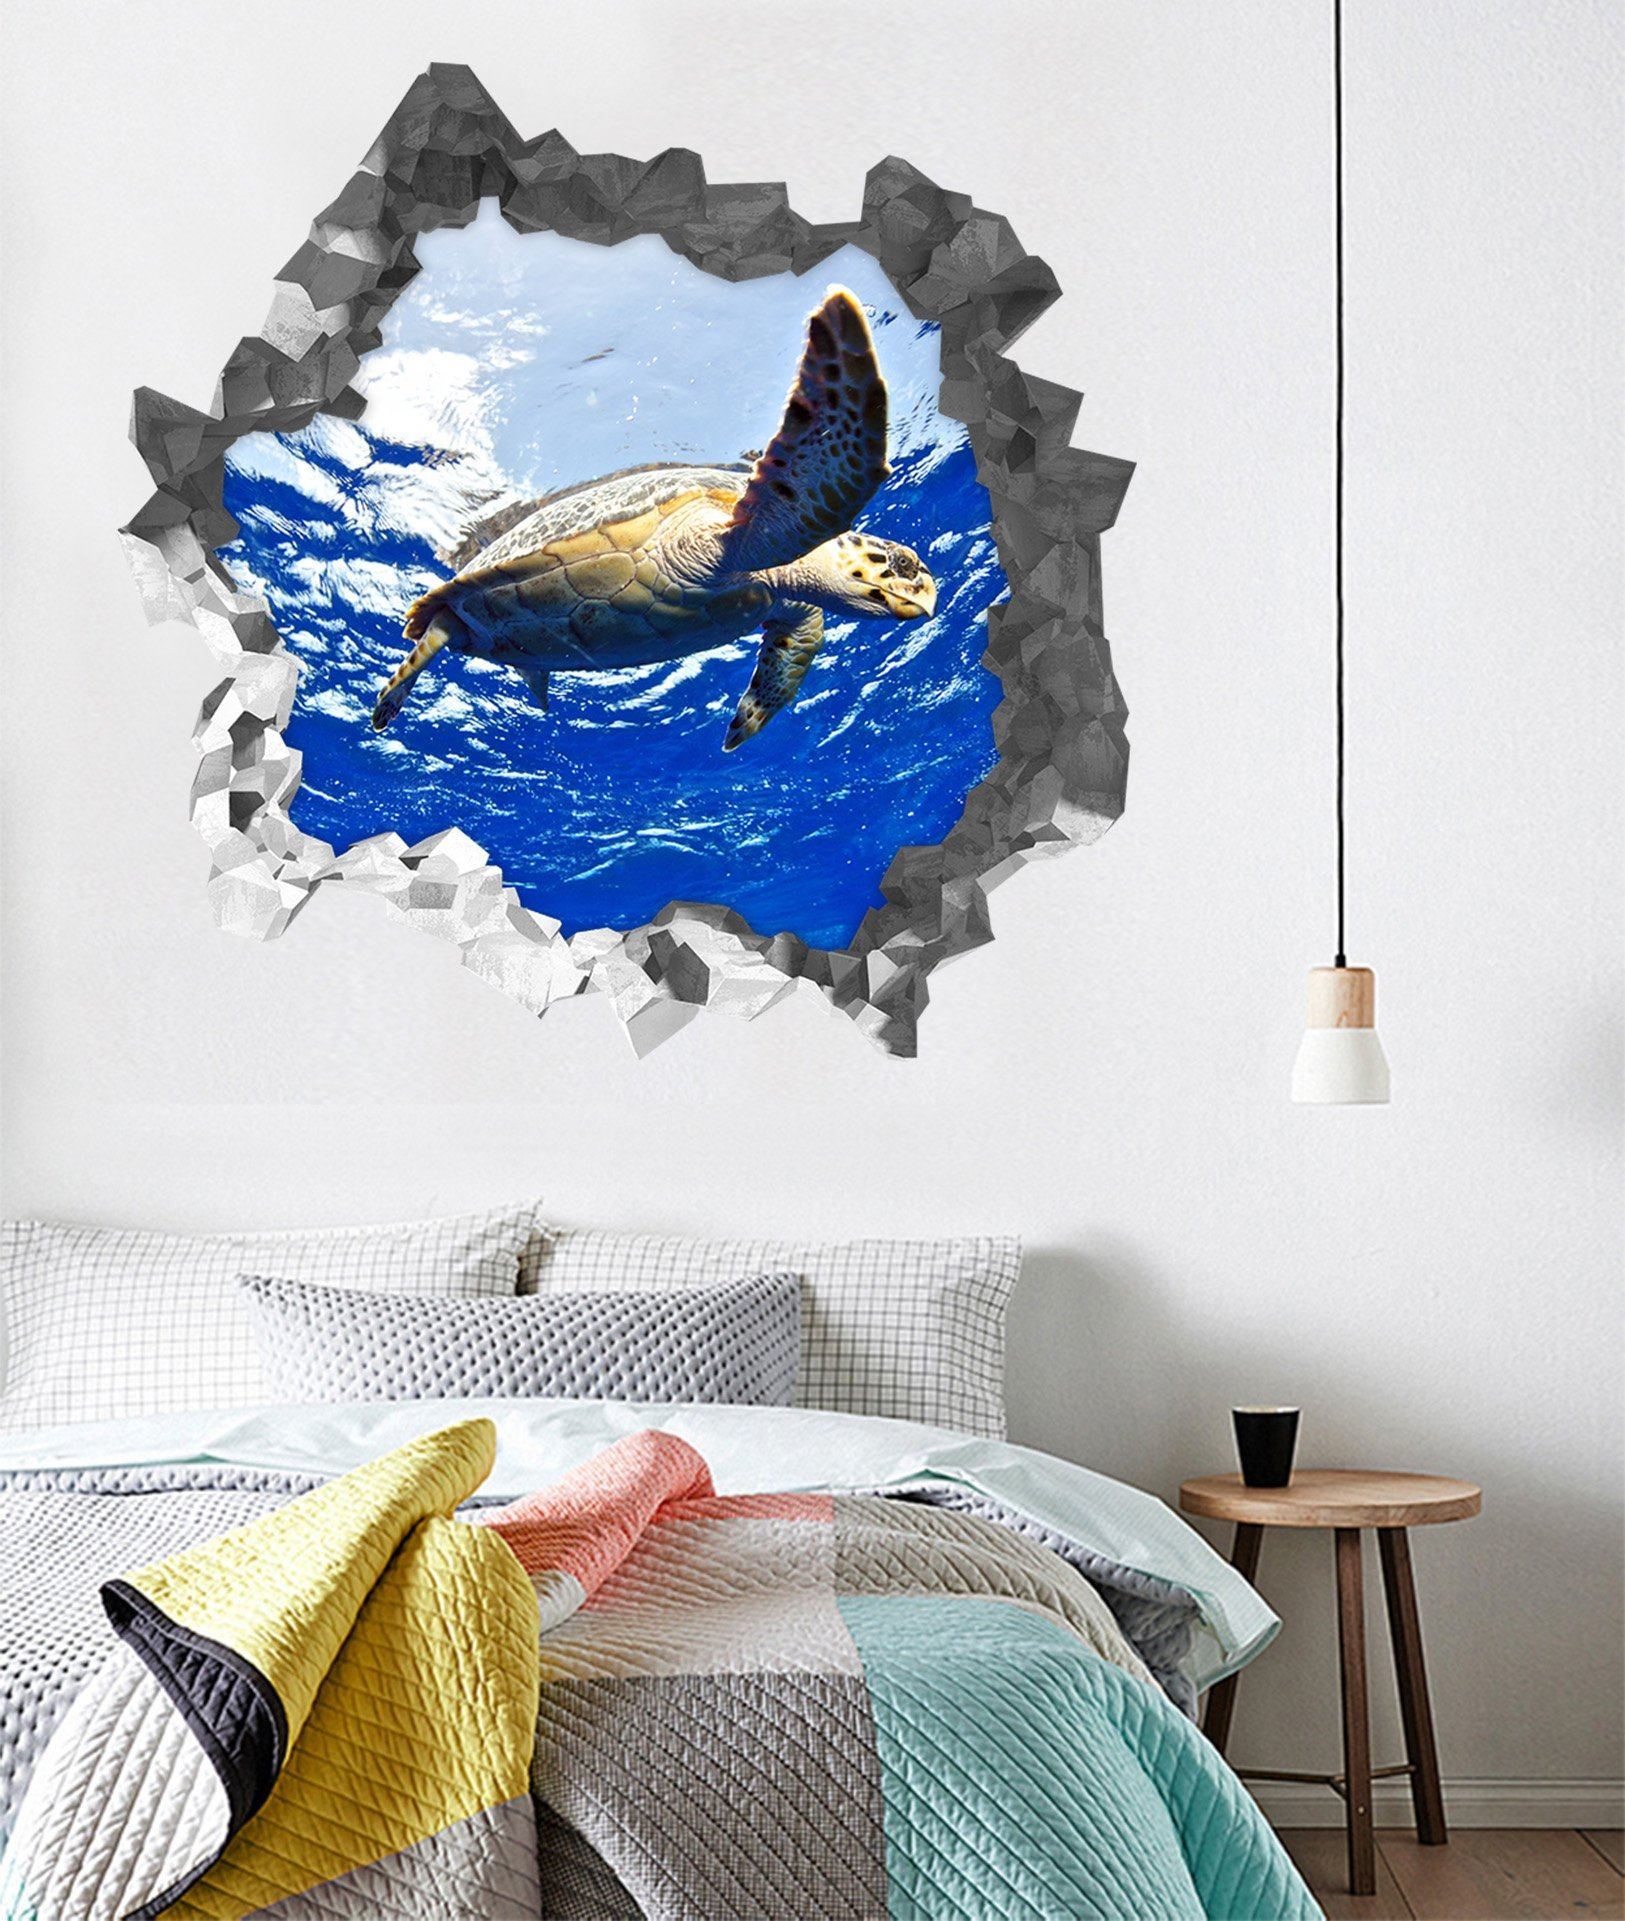 3D Blue Ocean Turtle 192 Broken Wall Murals Wallpaper AJ Wallpaper